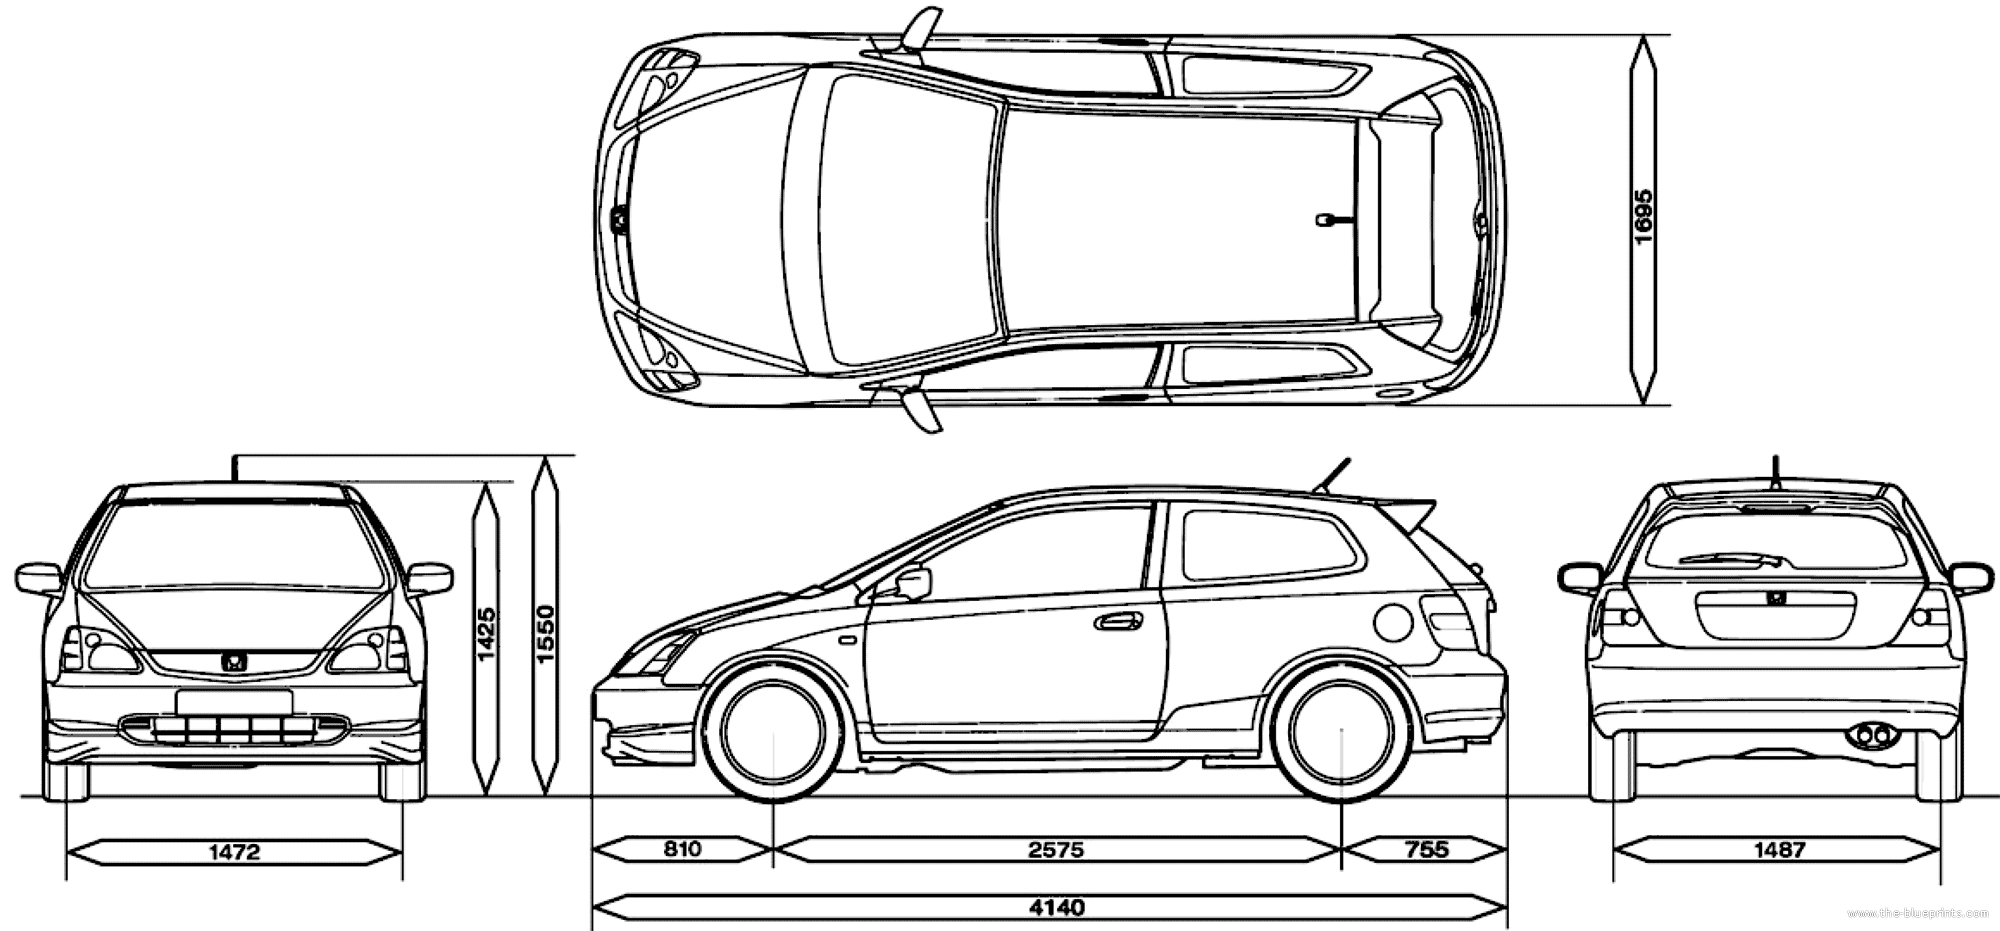 ShowAssembly likewise Sensor 2 Location 1999 Audi A6 Quattro moreover Audi A2 Wiring Diagram likewise 2013 Beetle Fuse Panel Diagram likewise Geo Tracker Engine Swap Toyota. on audi a5 fuse box location